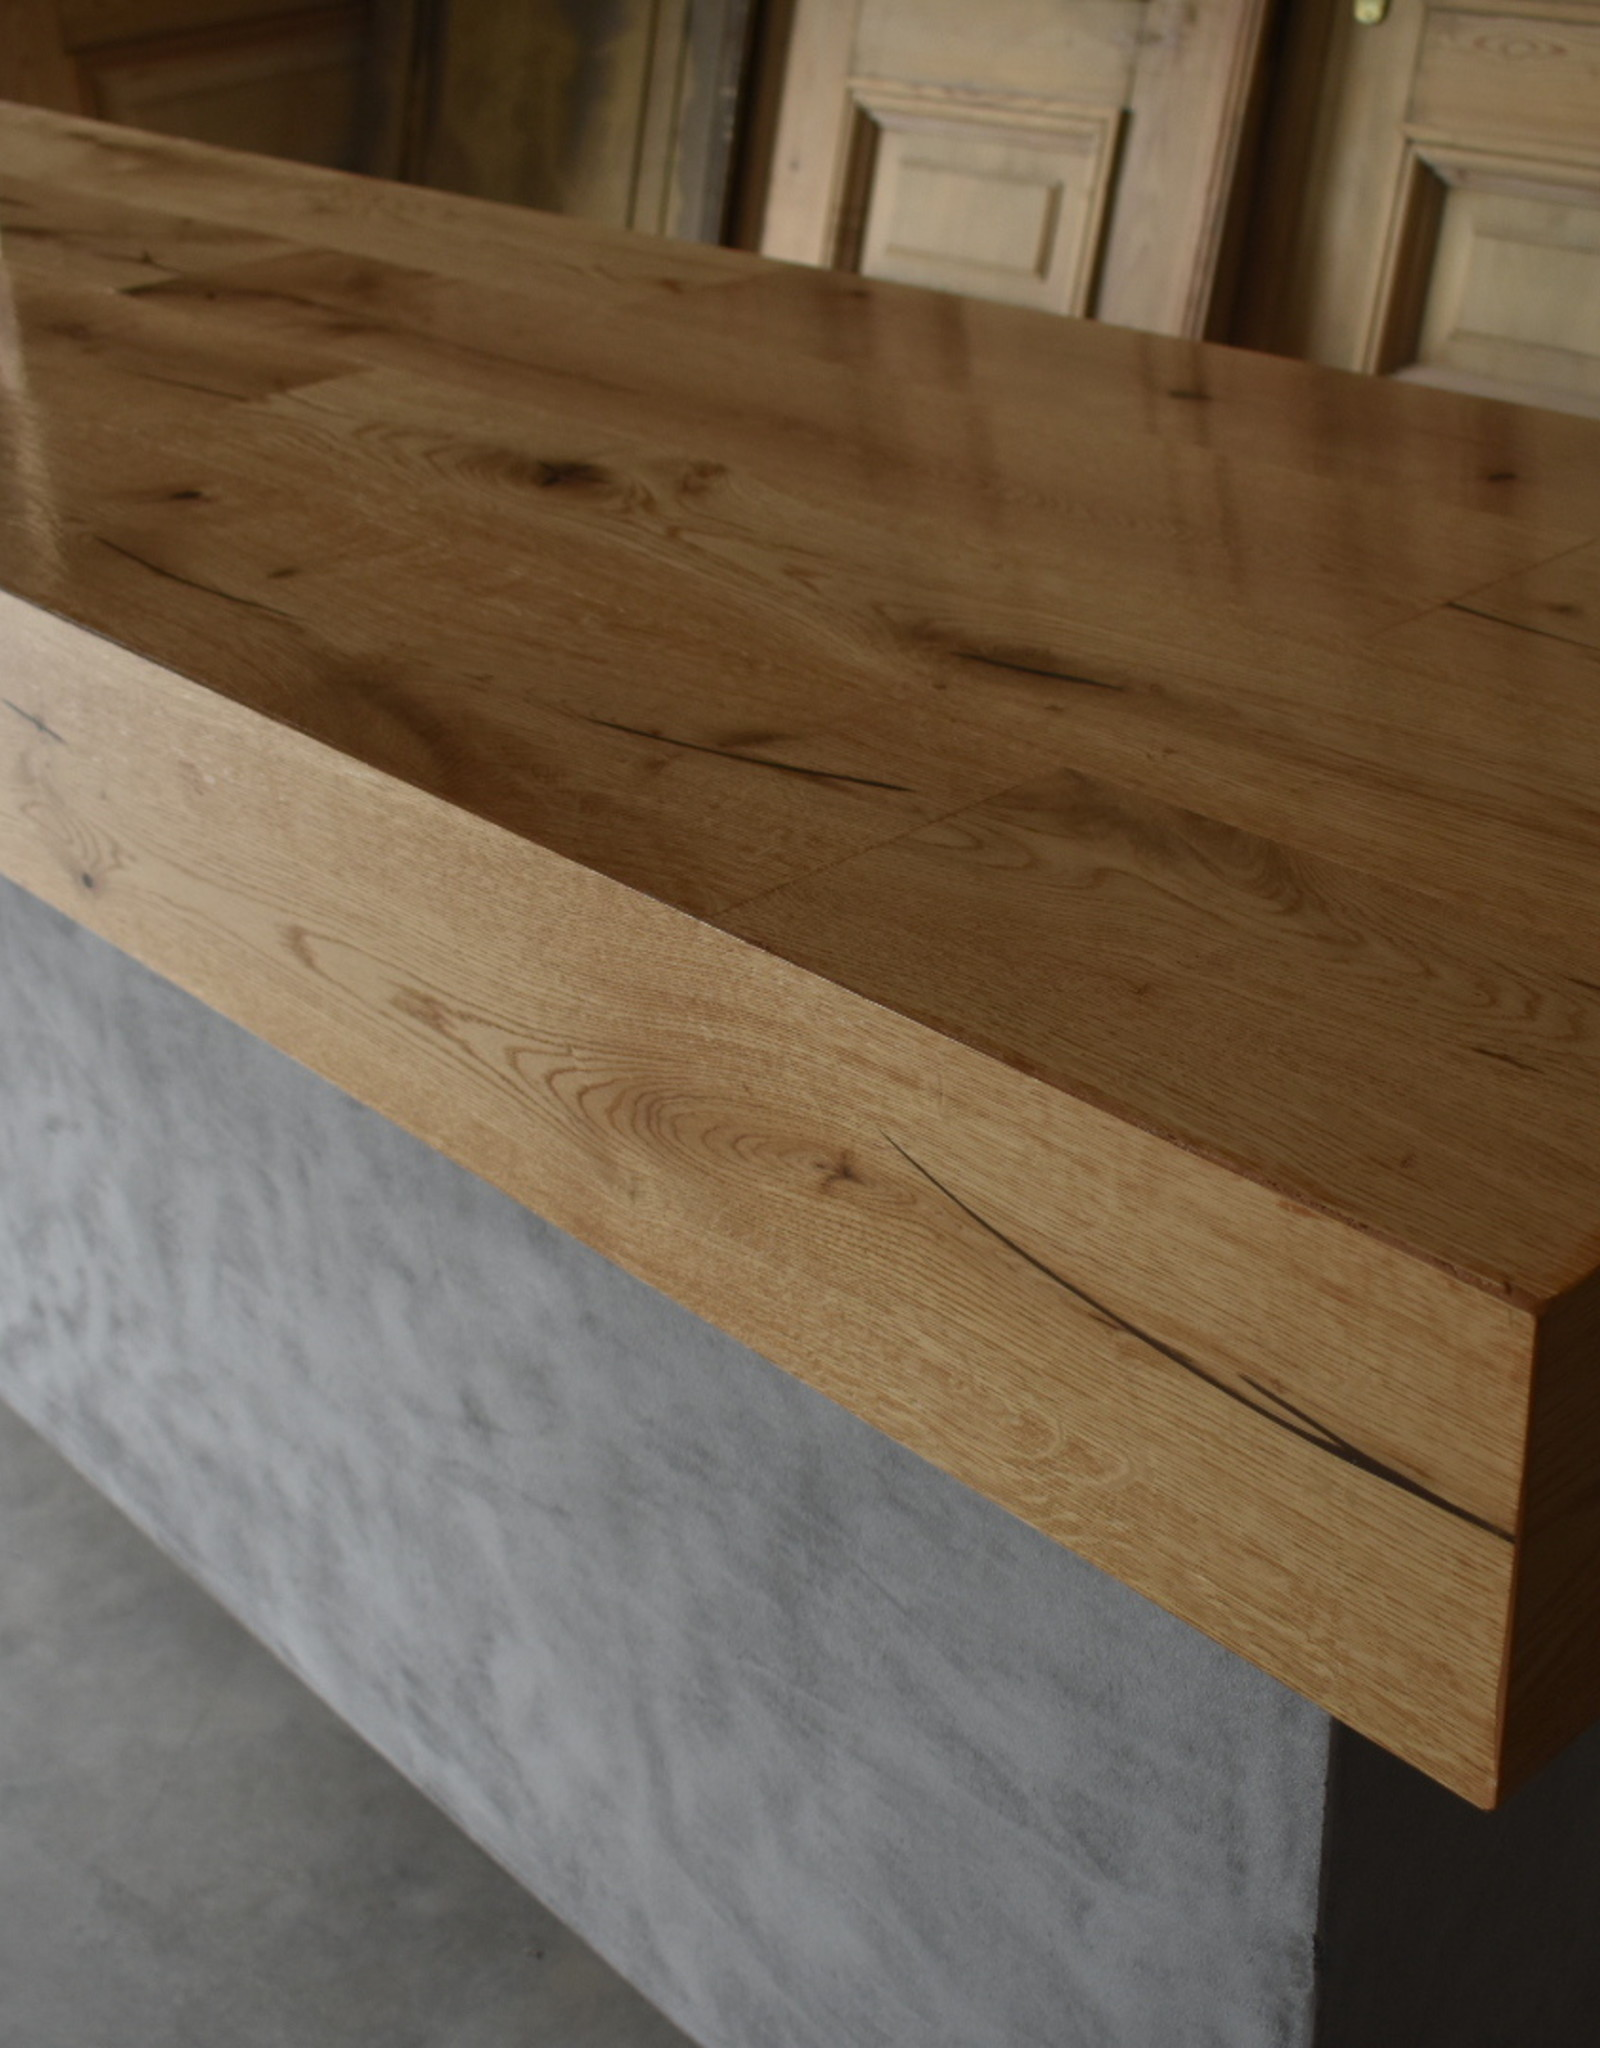 Modern counter concrete and wood vintage / Industrial